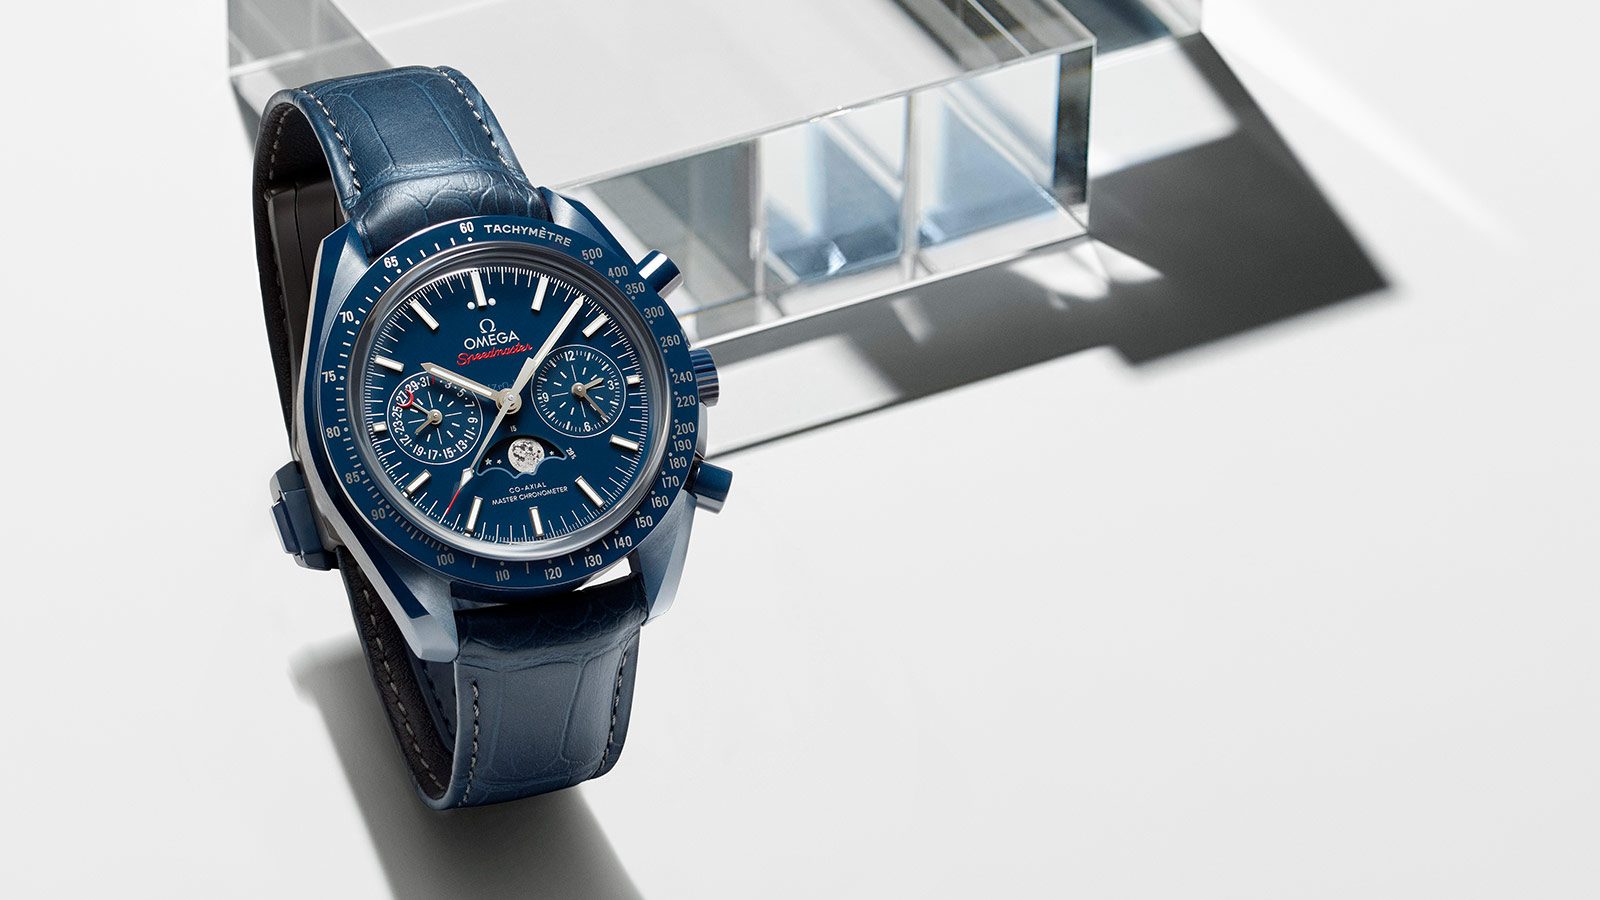 Omega Speedmaster Moonwatch in all blue with a leather strap